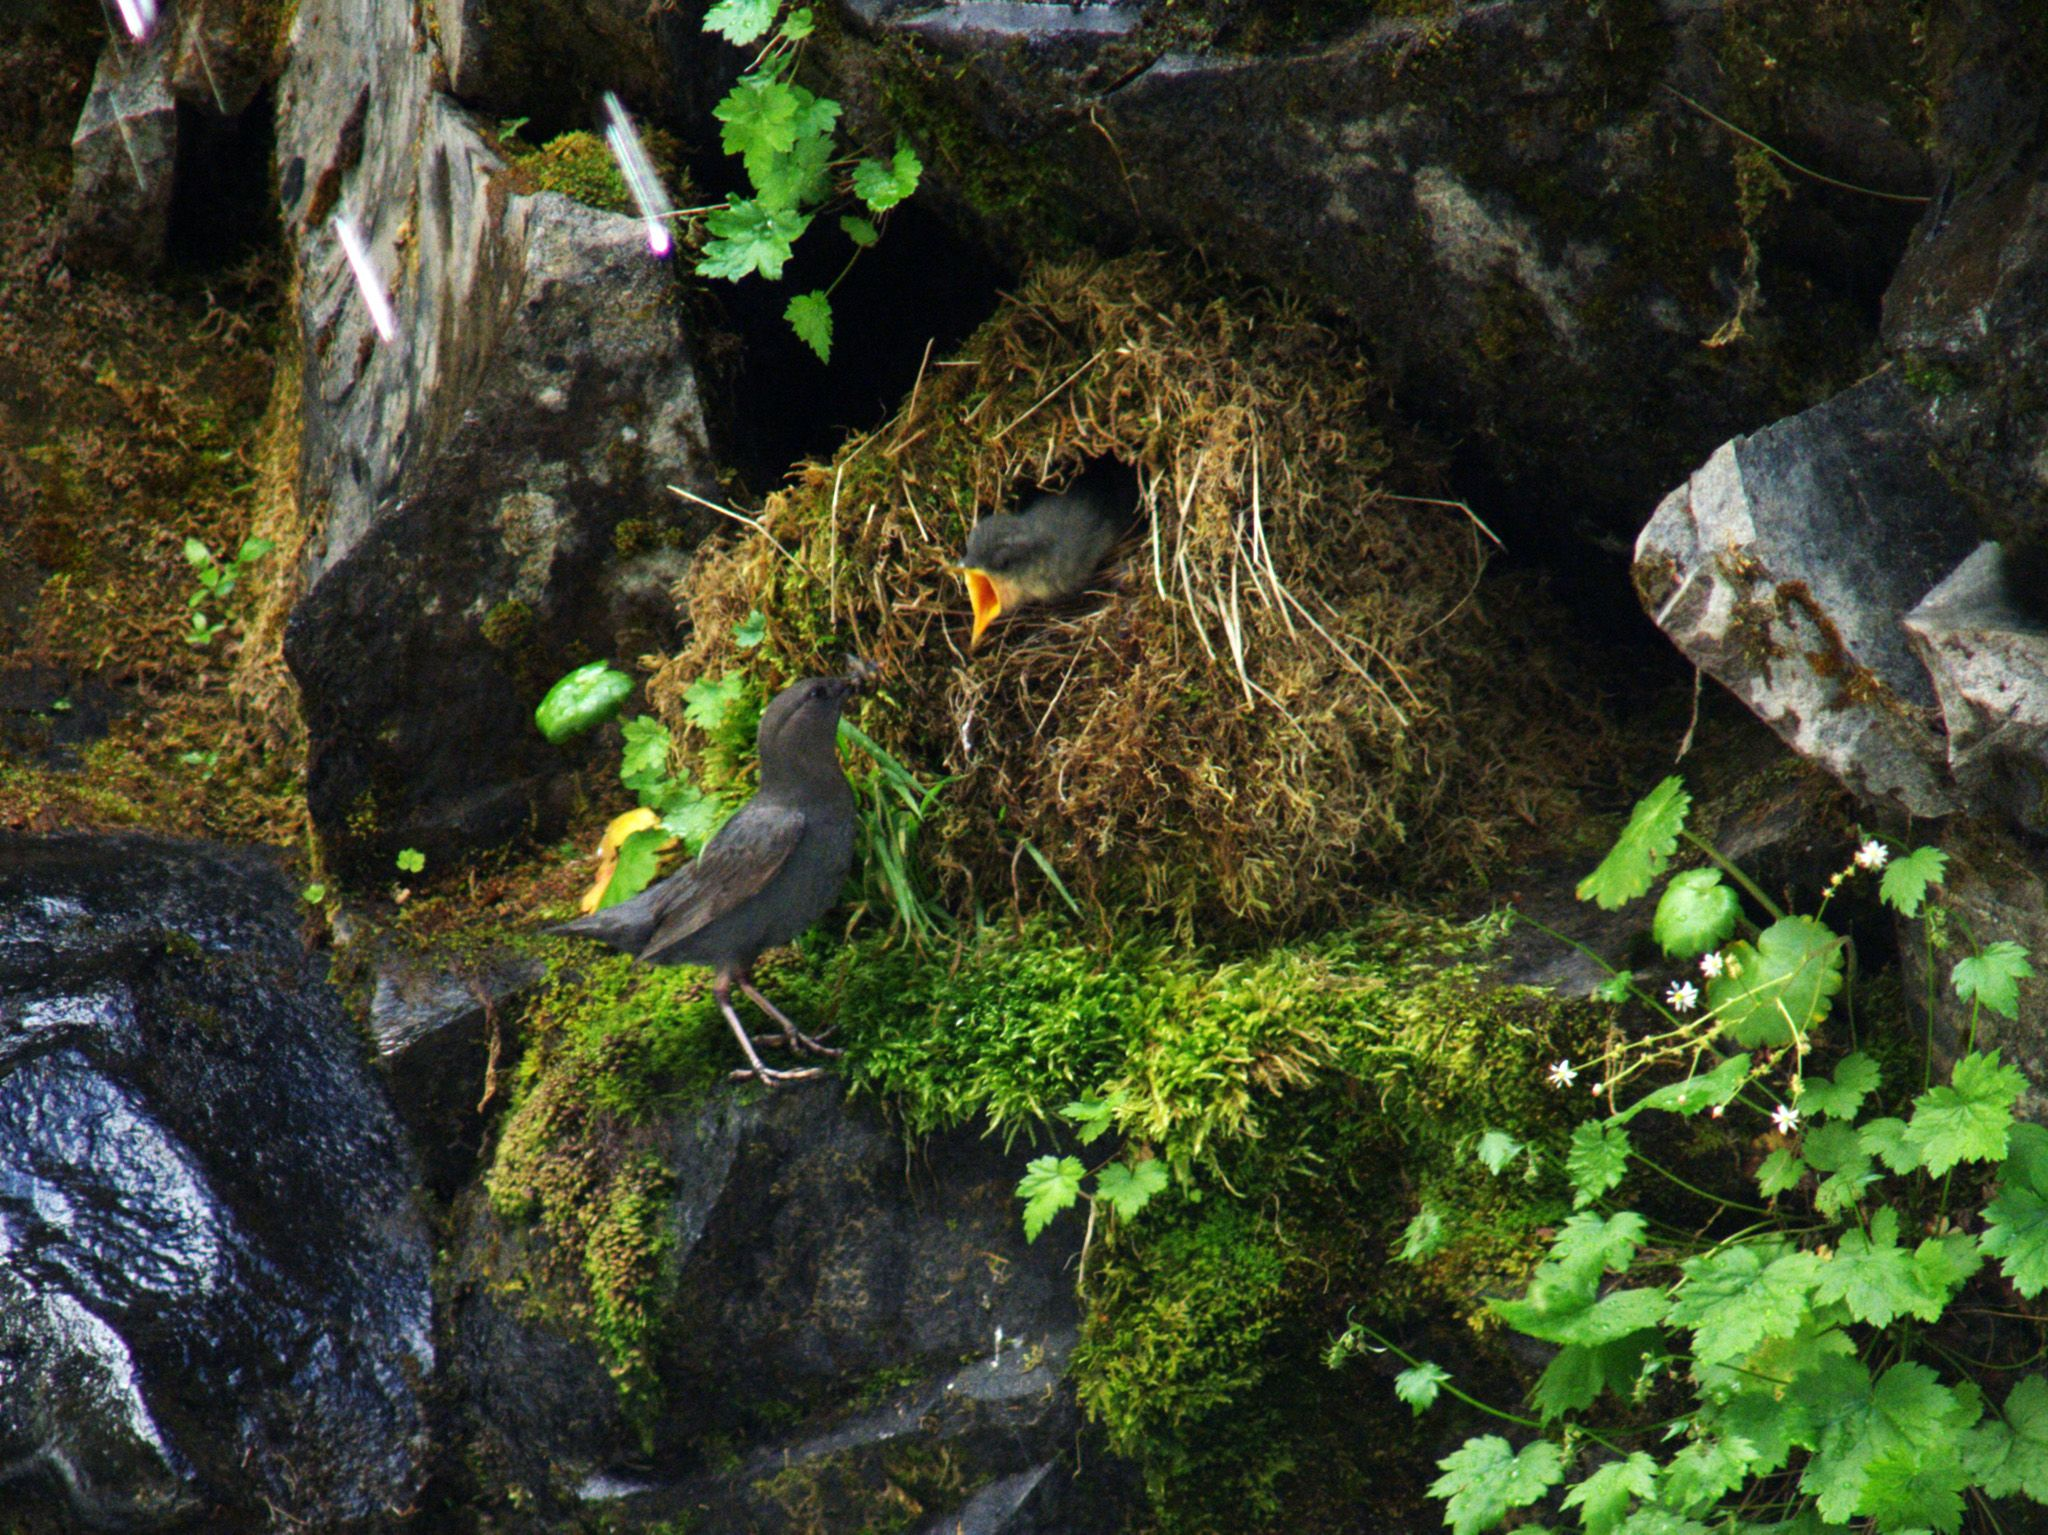 Mt Rainier National Park, WA:  An American Dipper in a nest.  This image is from America the... [Photo of the day - June 2018]